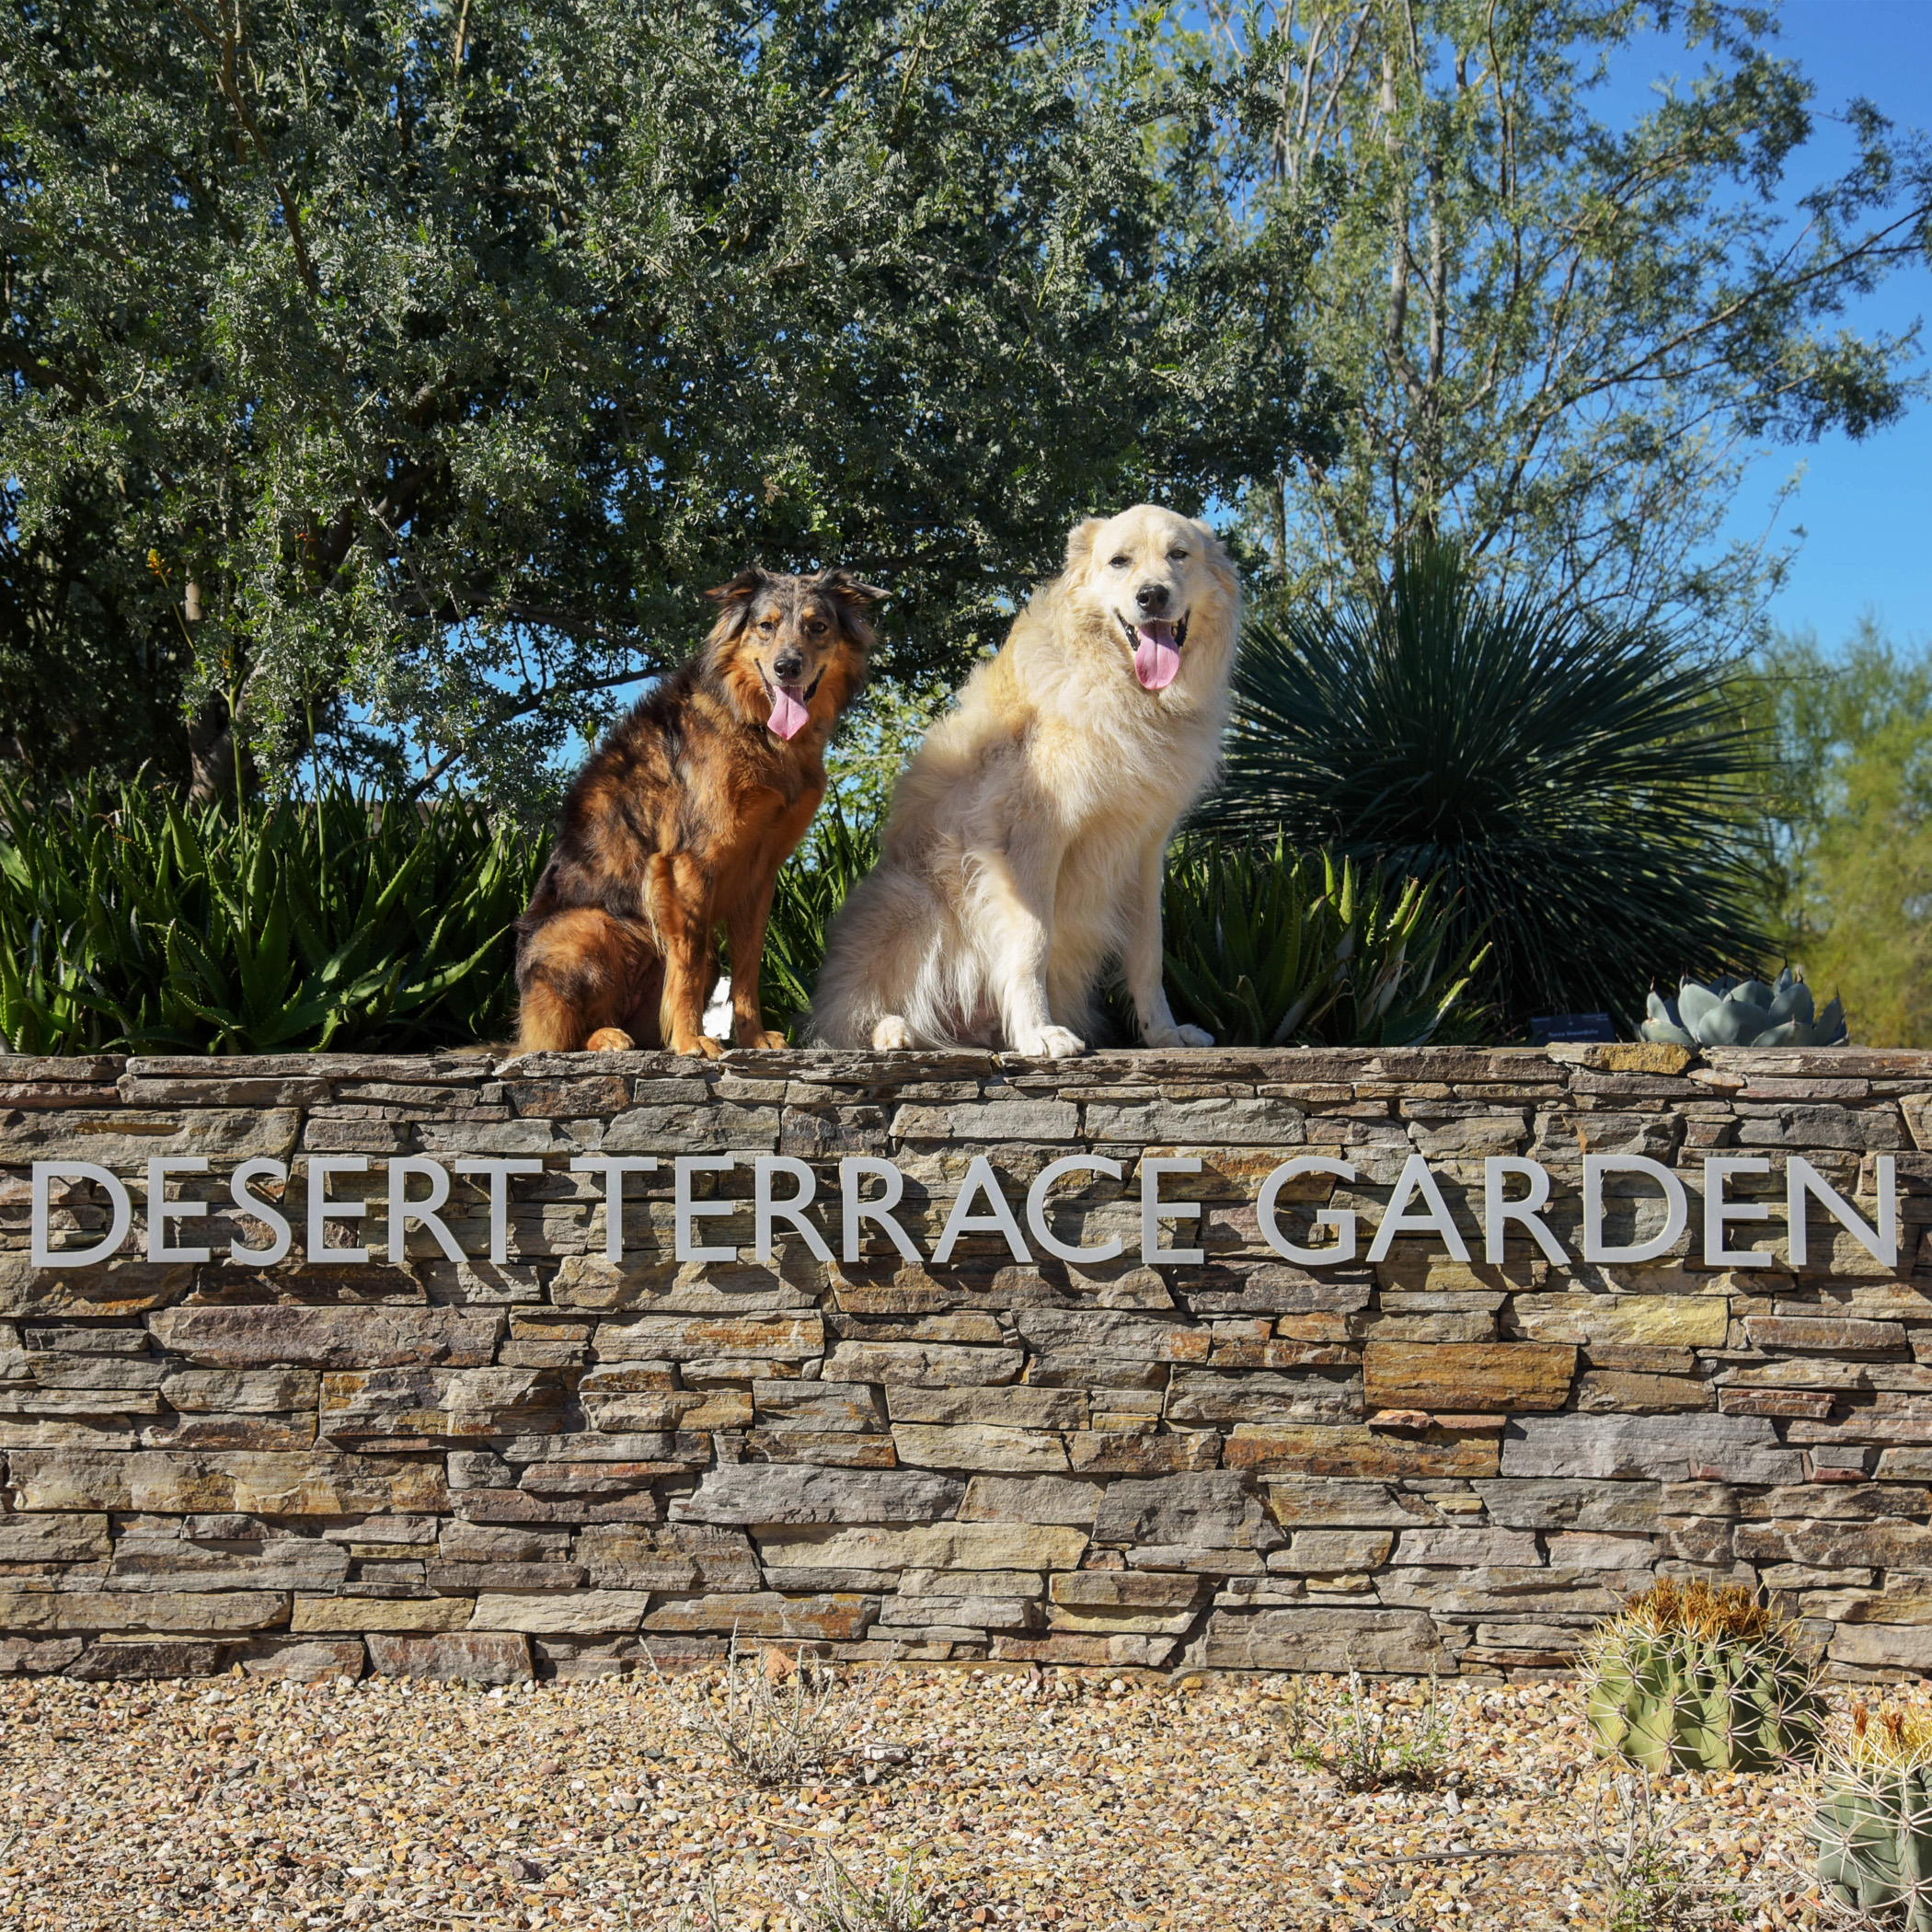 Our friends Apache & Max are just as rock star as us, when it comes to posing for the camera!